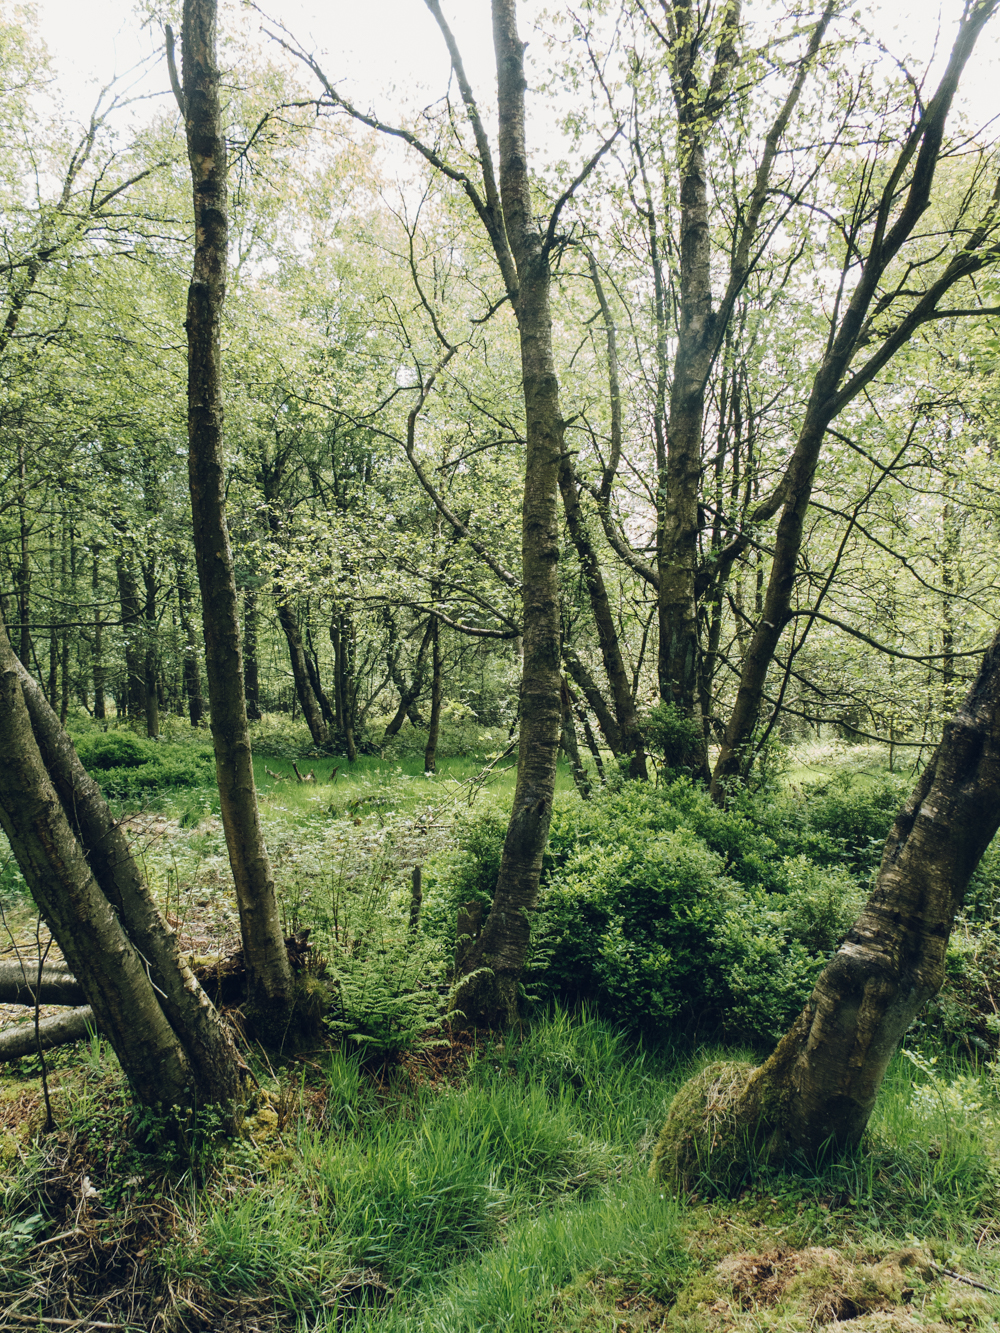 Haarkon Forest Woods Trees Walk Nature Yorkshire Peak District leaf green plants woodland